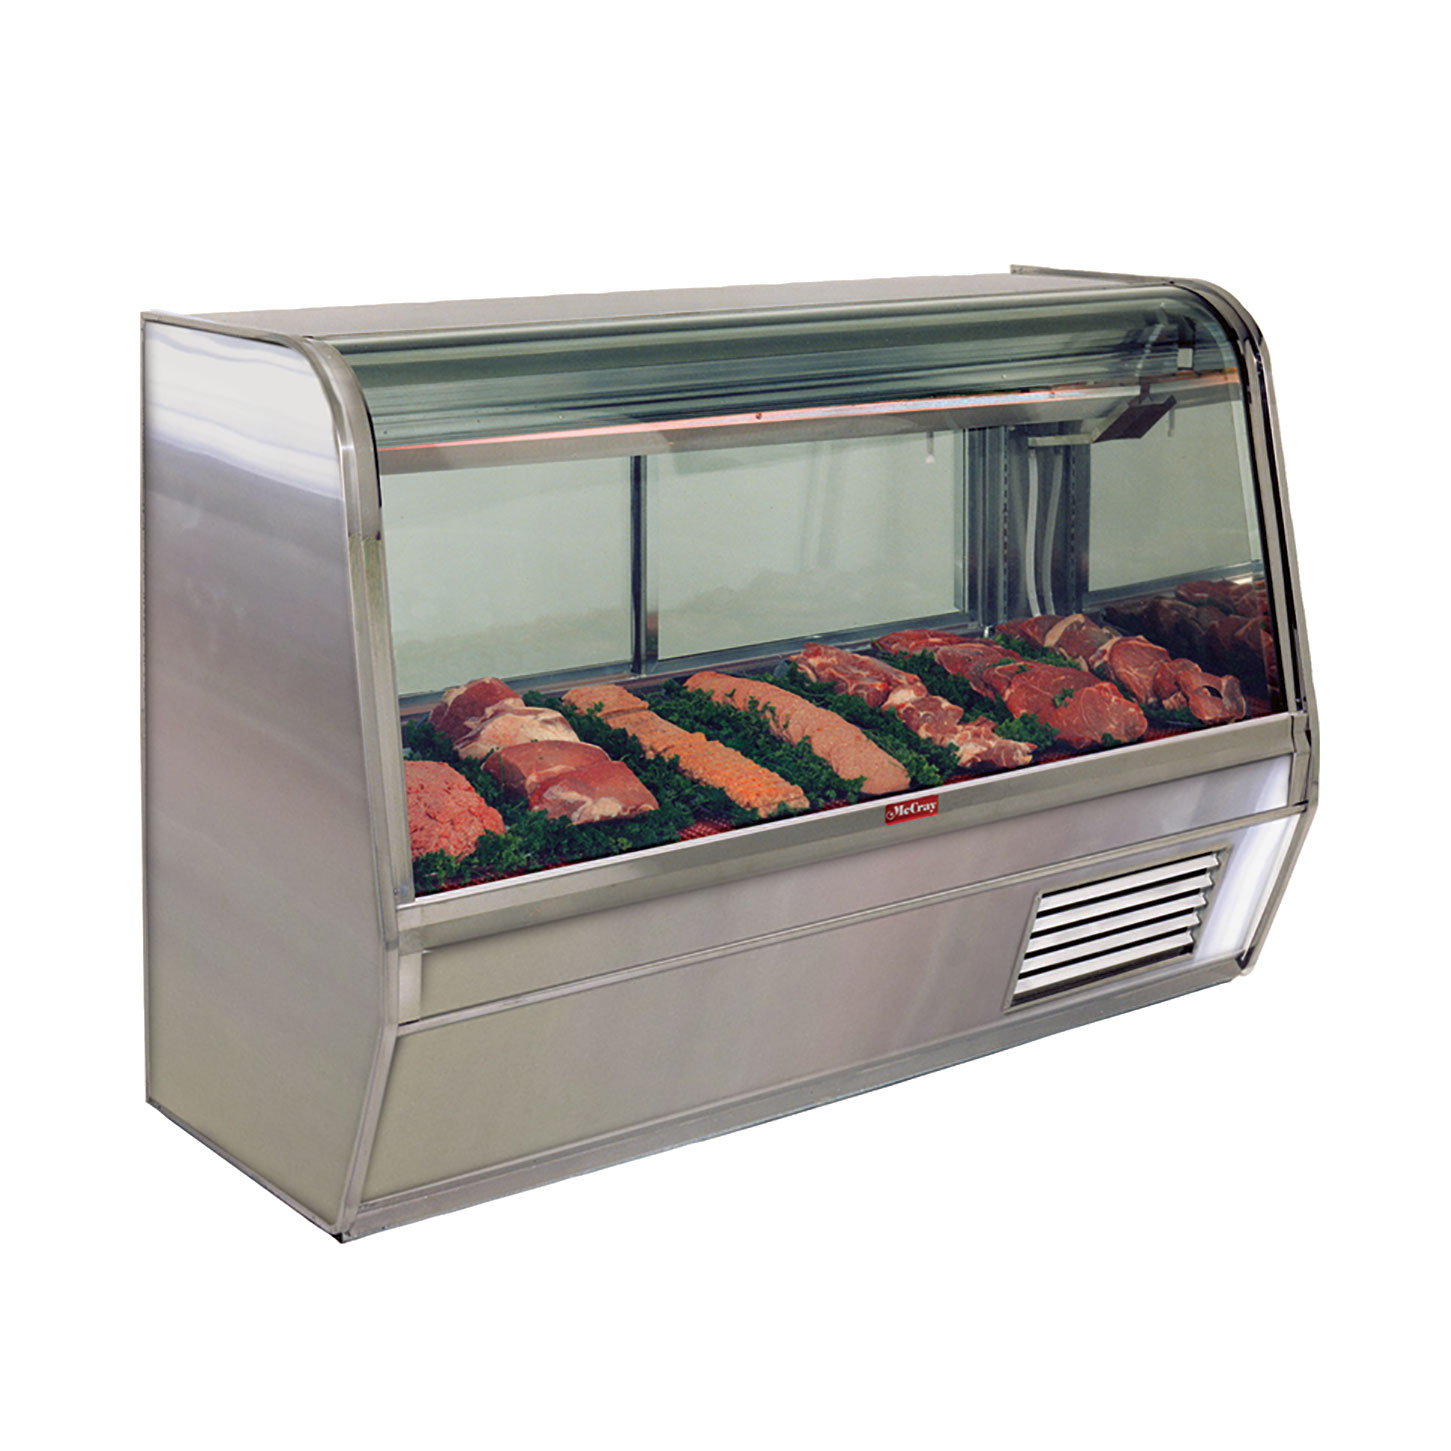 Howard-McCray R-CMS32E-8-S-LED display case, red meat deli